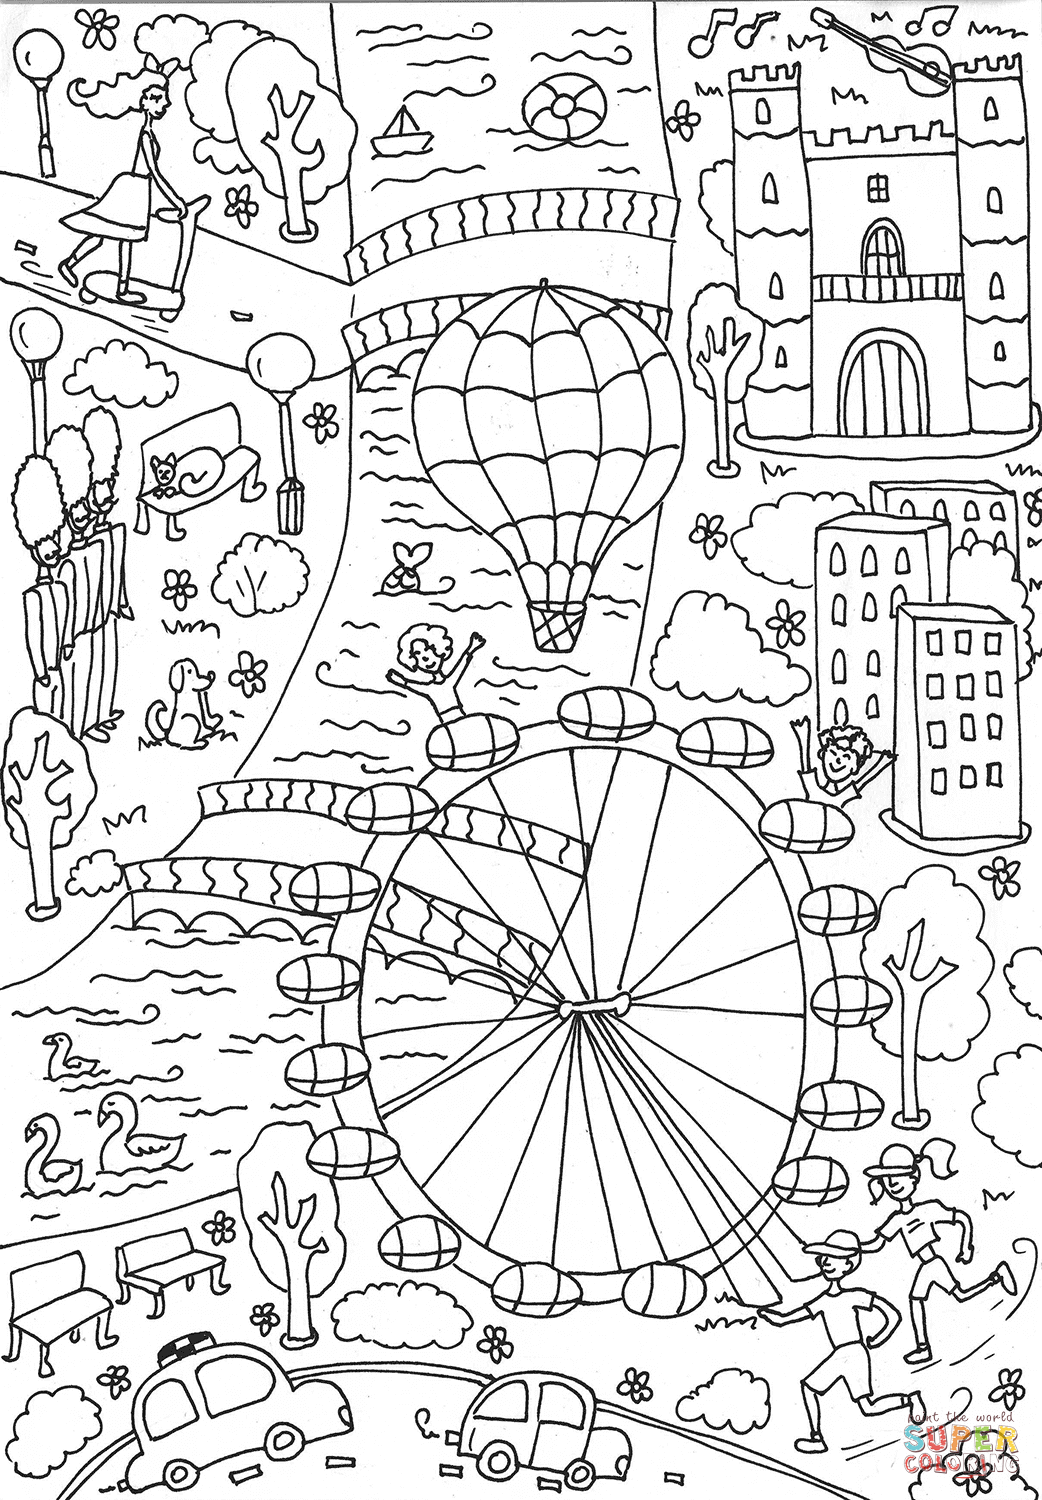 london coloring pages get the coloring page london bridge free printable london coloring pages